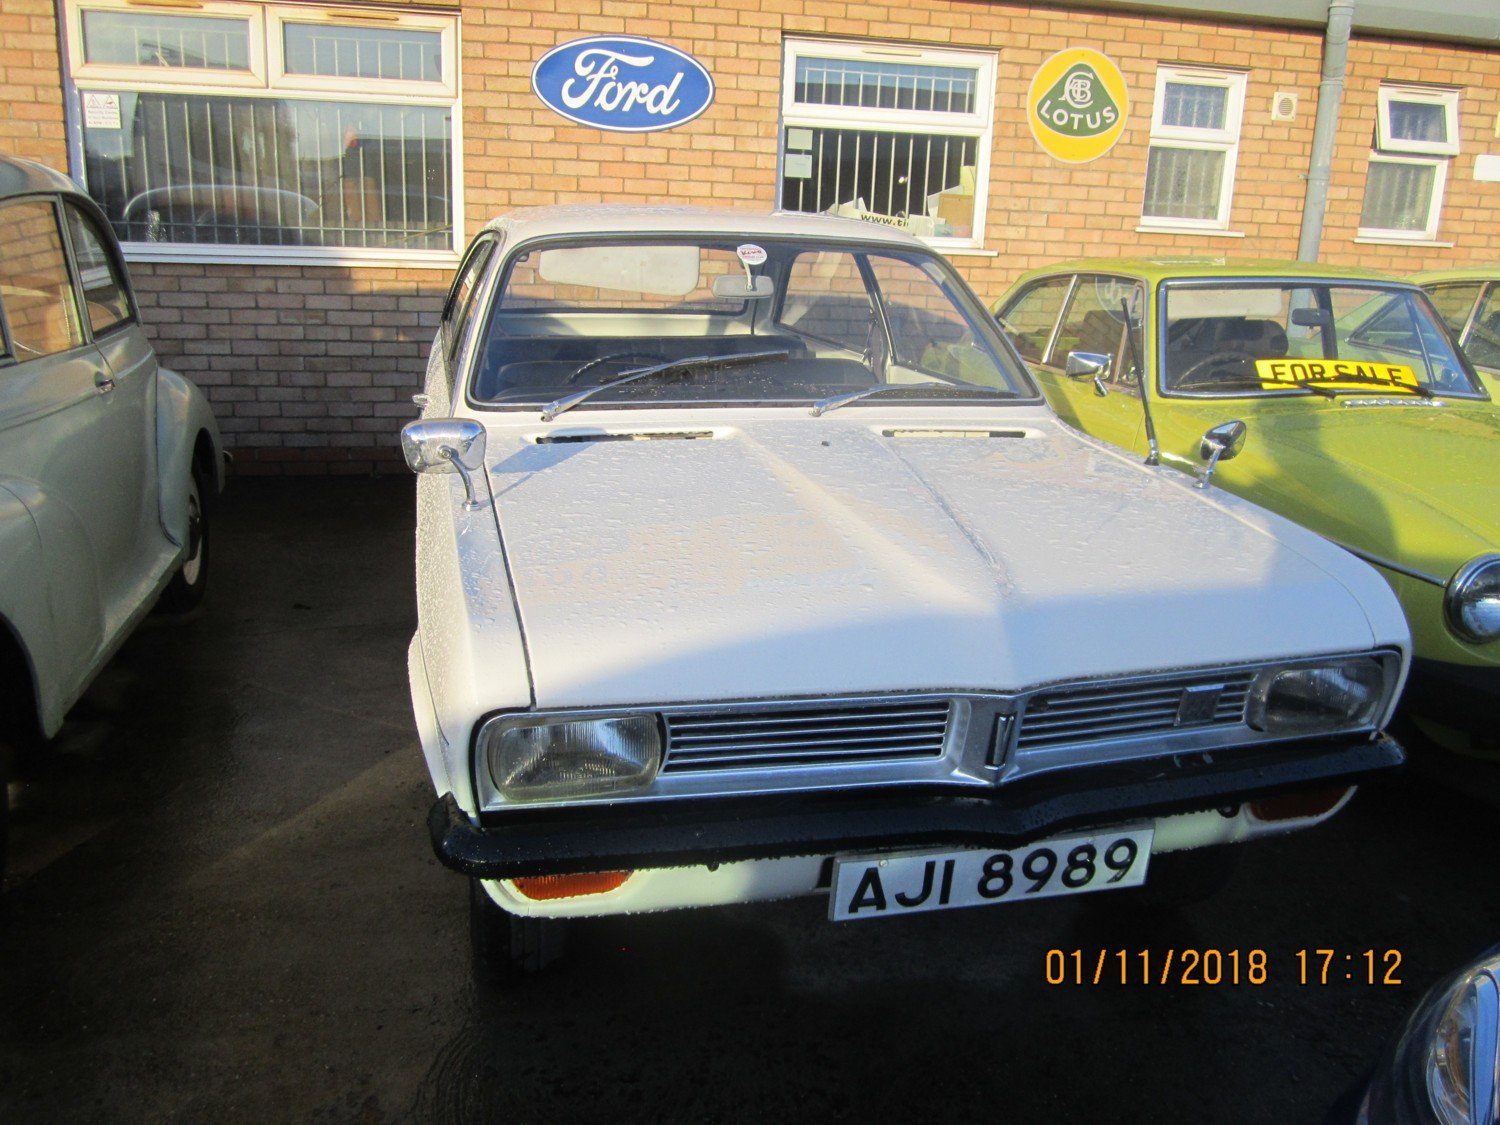 1973 Viva estate  Reduced For Sale (picture 2 of 4)